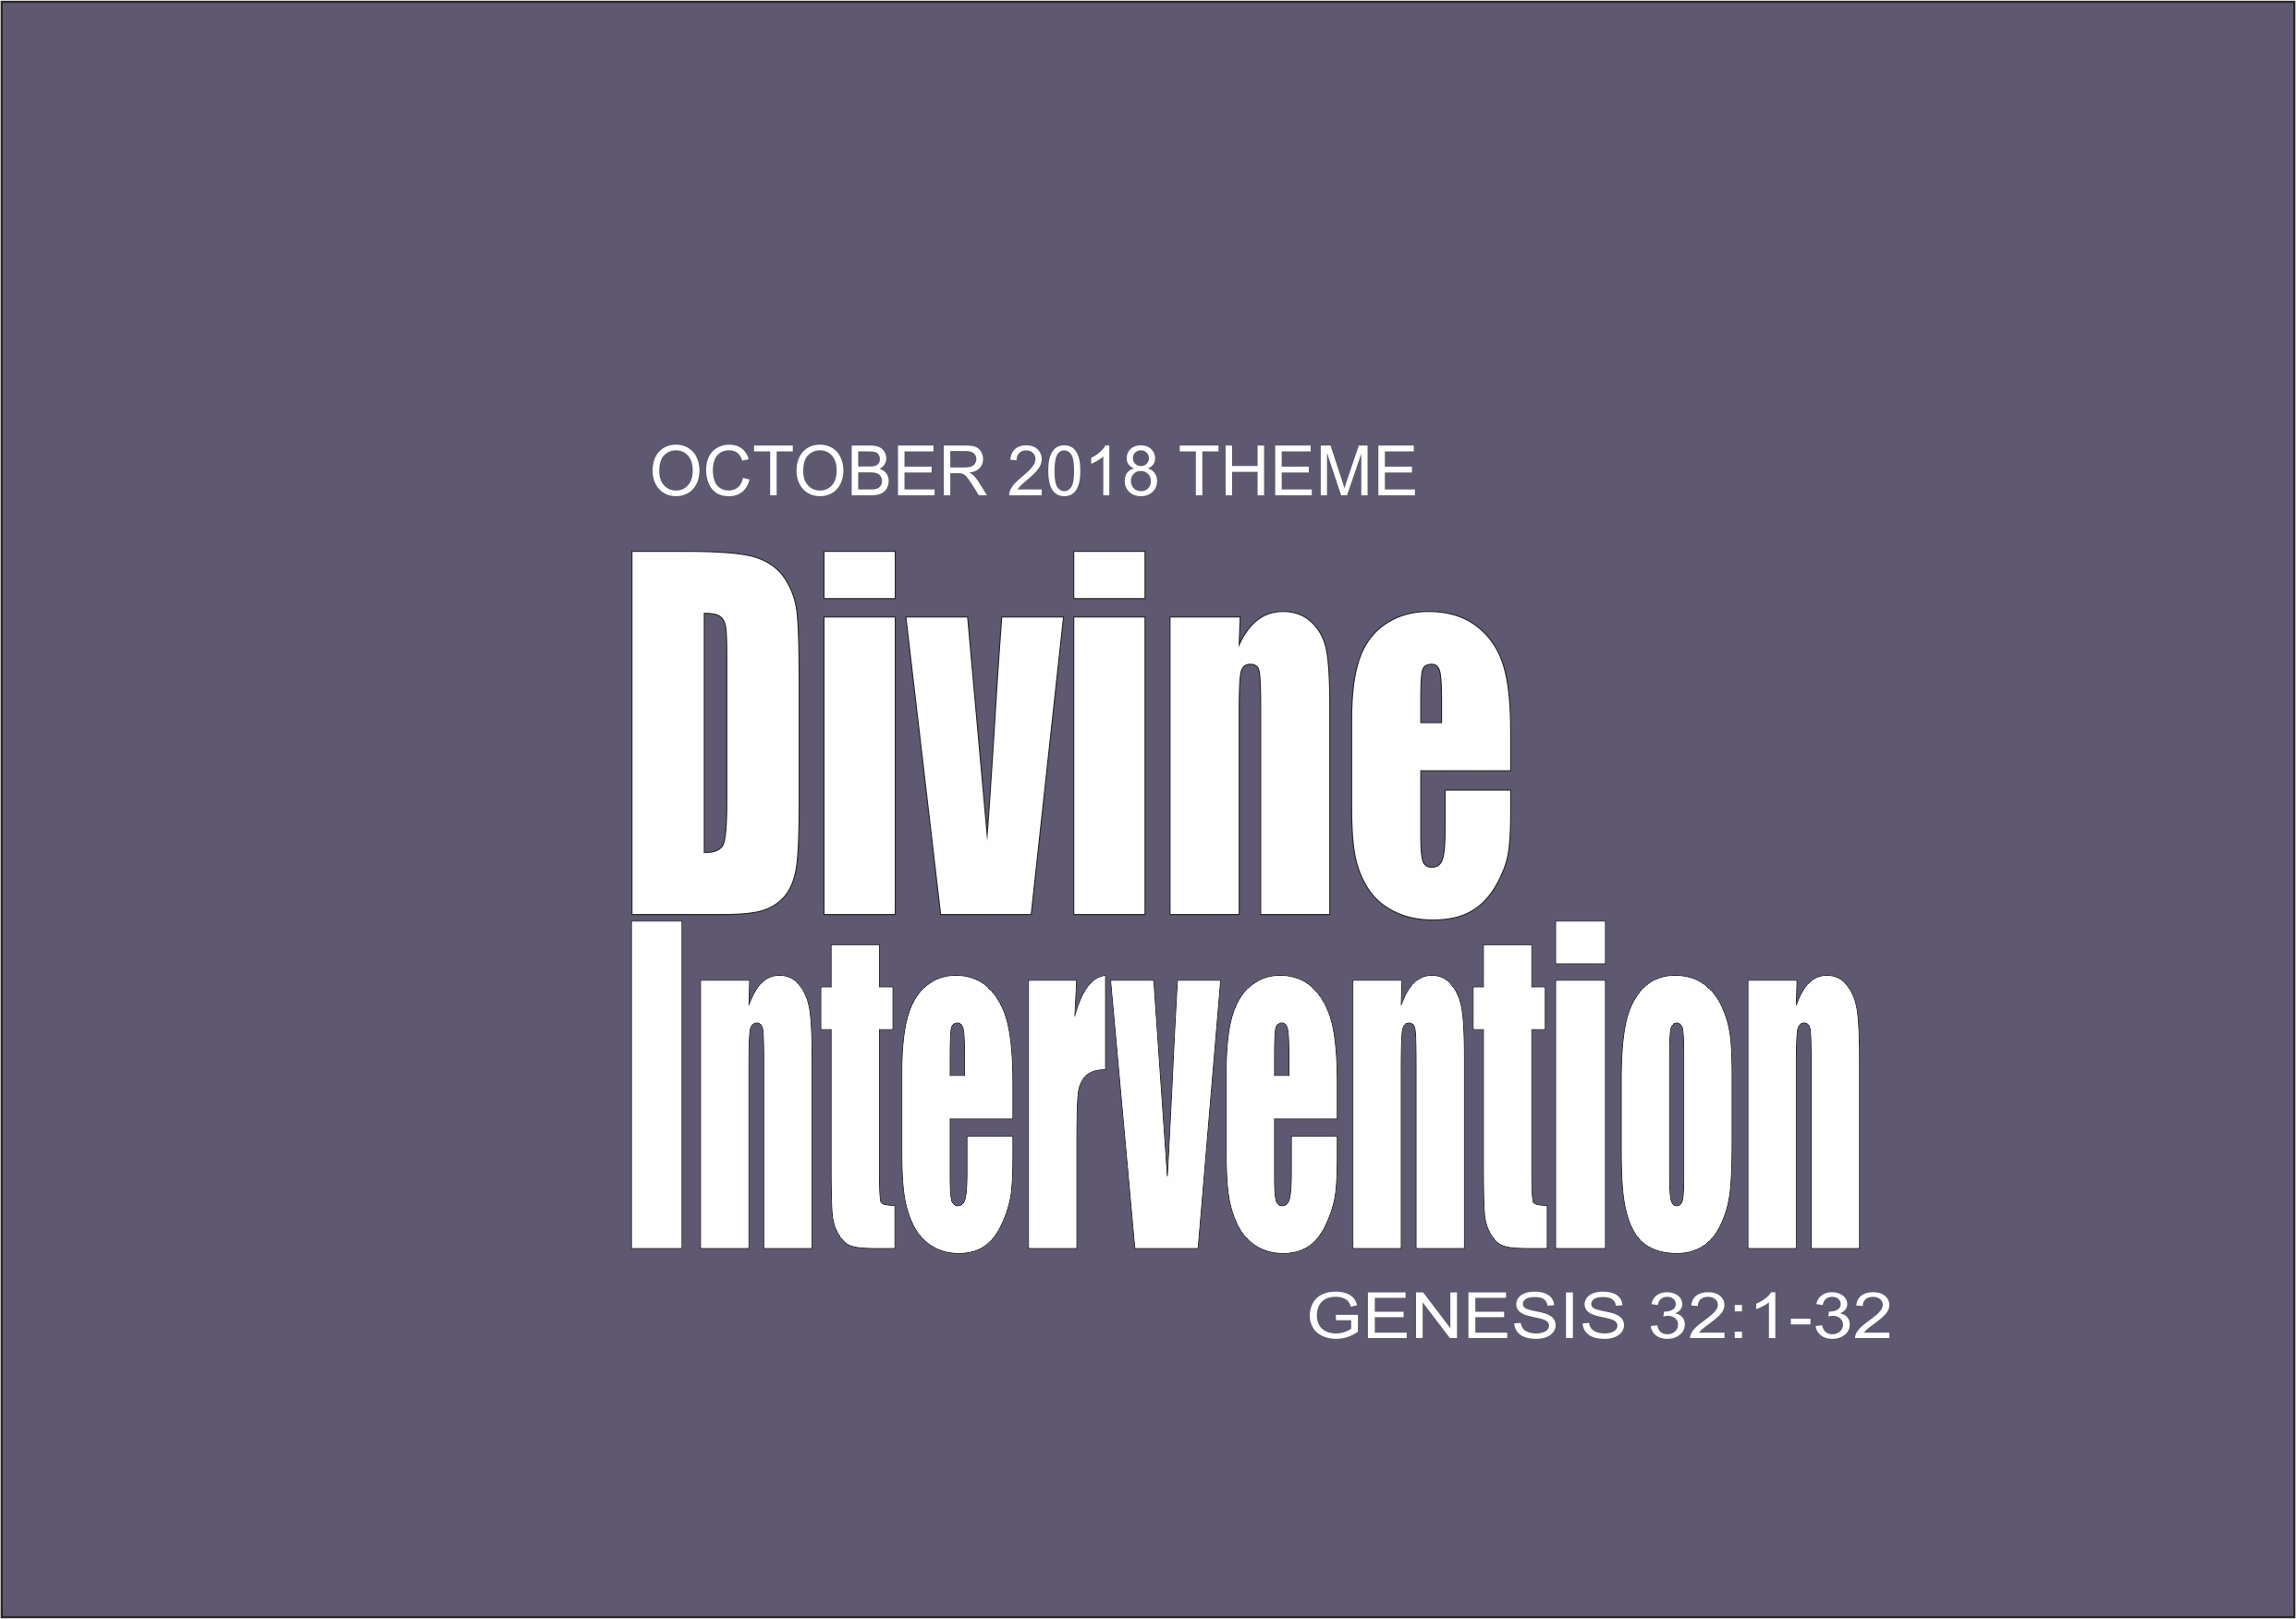 October 2018 Theme - Divine Intervention Gen 32: 1-32